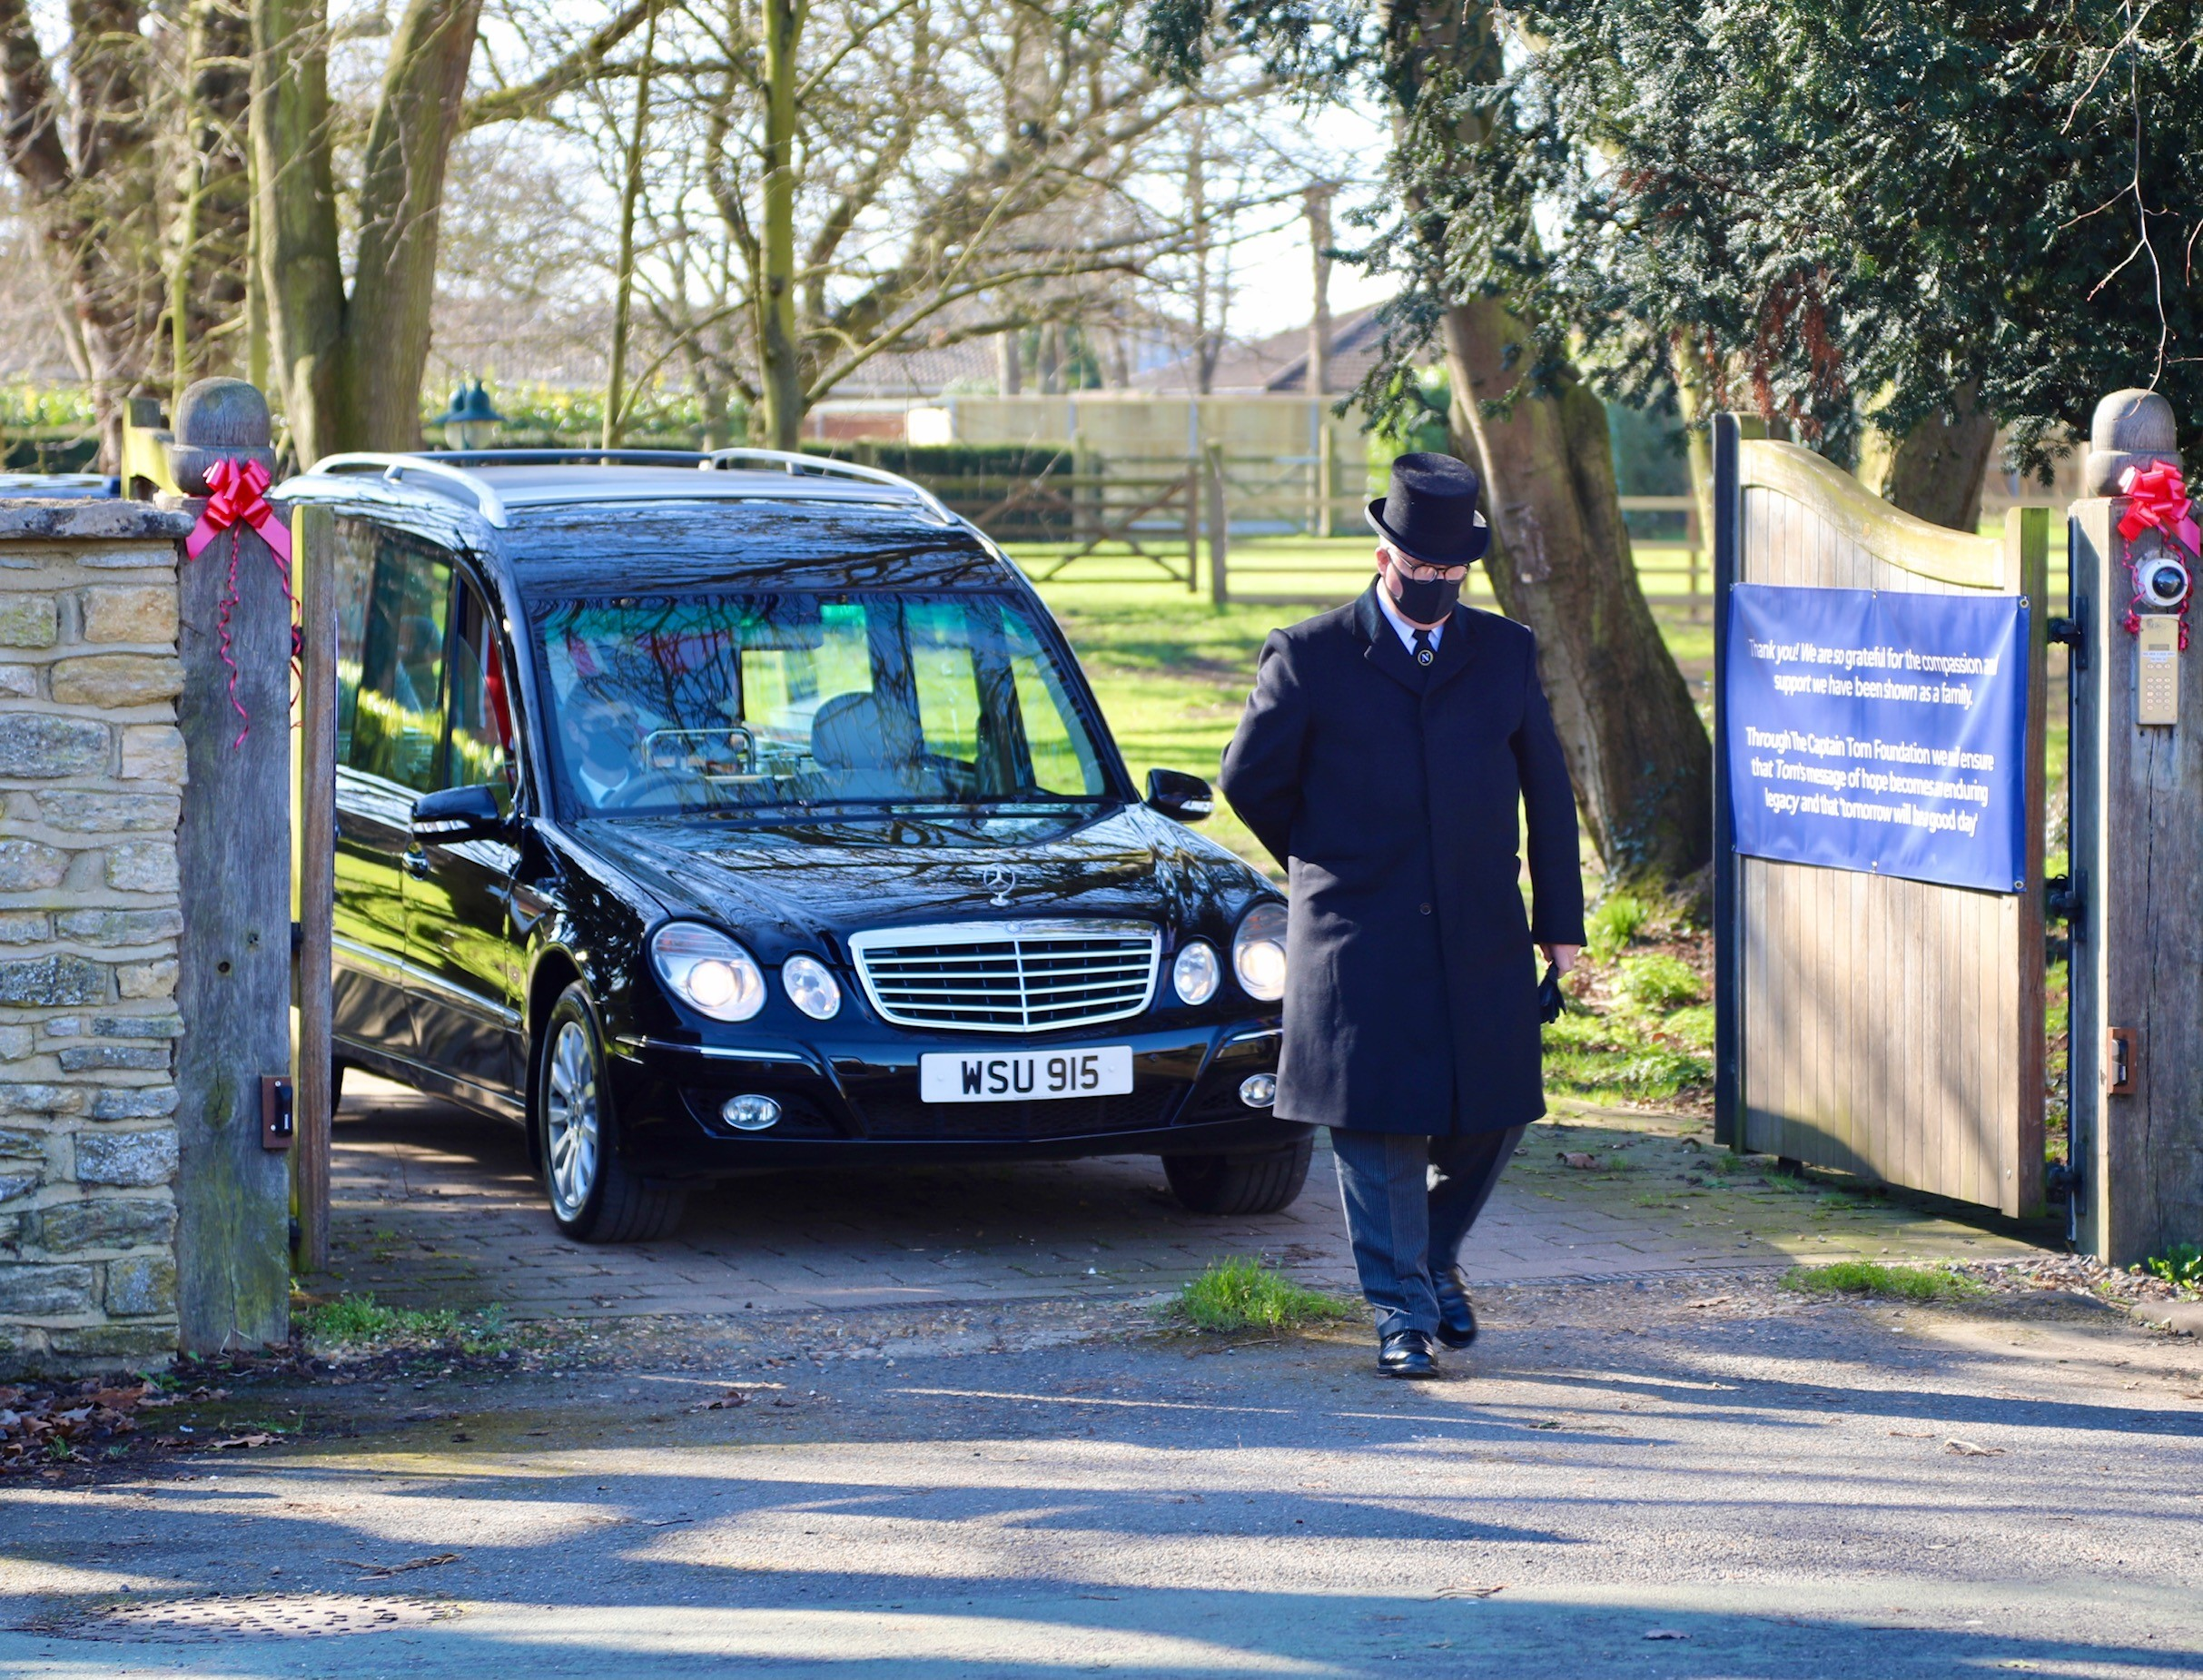 Neville Funerals Helps with Family's Final Farewell to Captain Sir Tom Moore